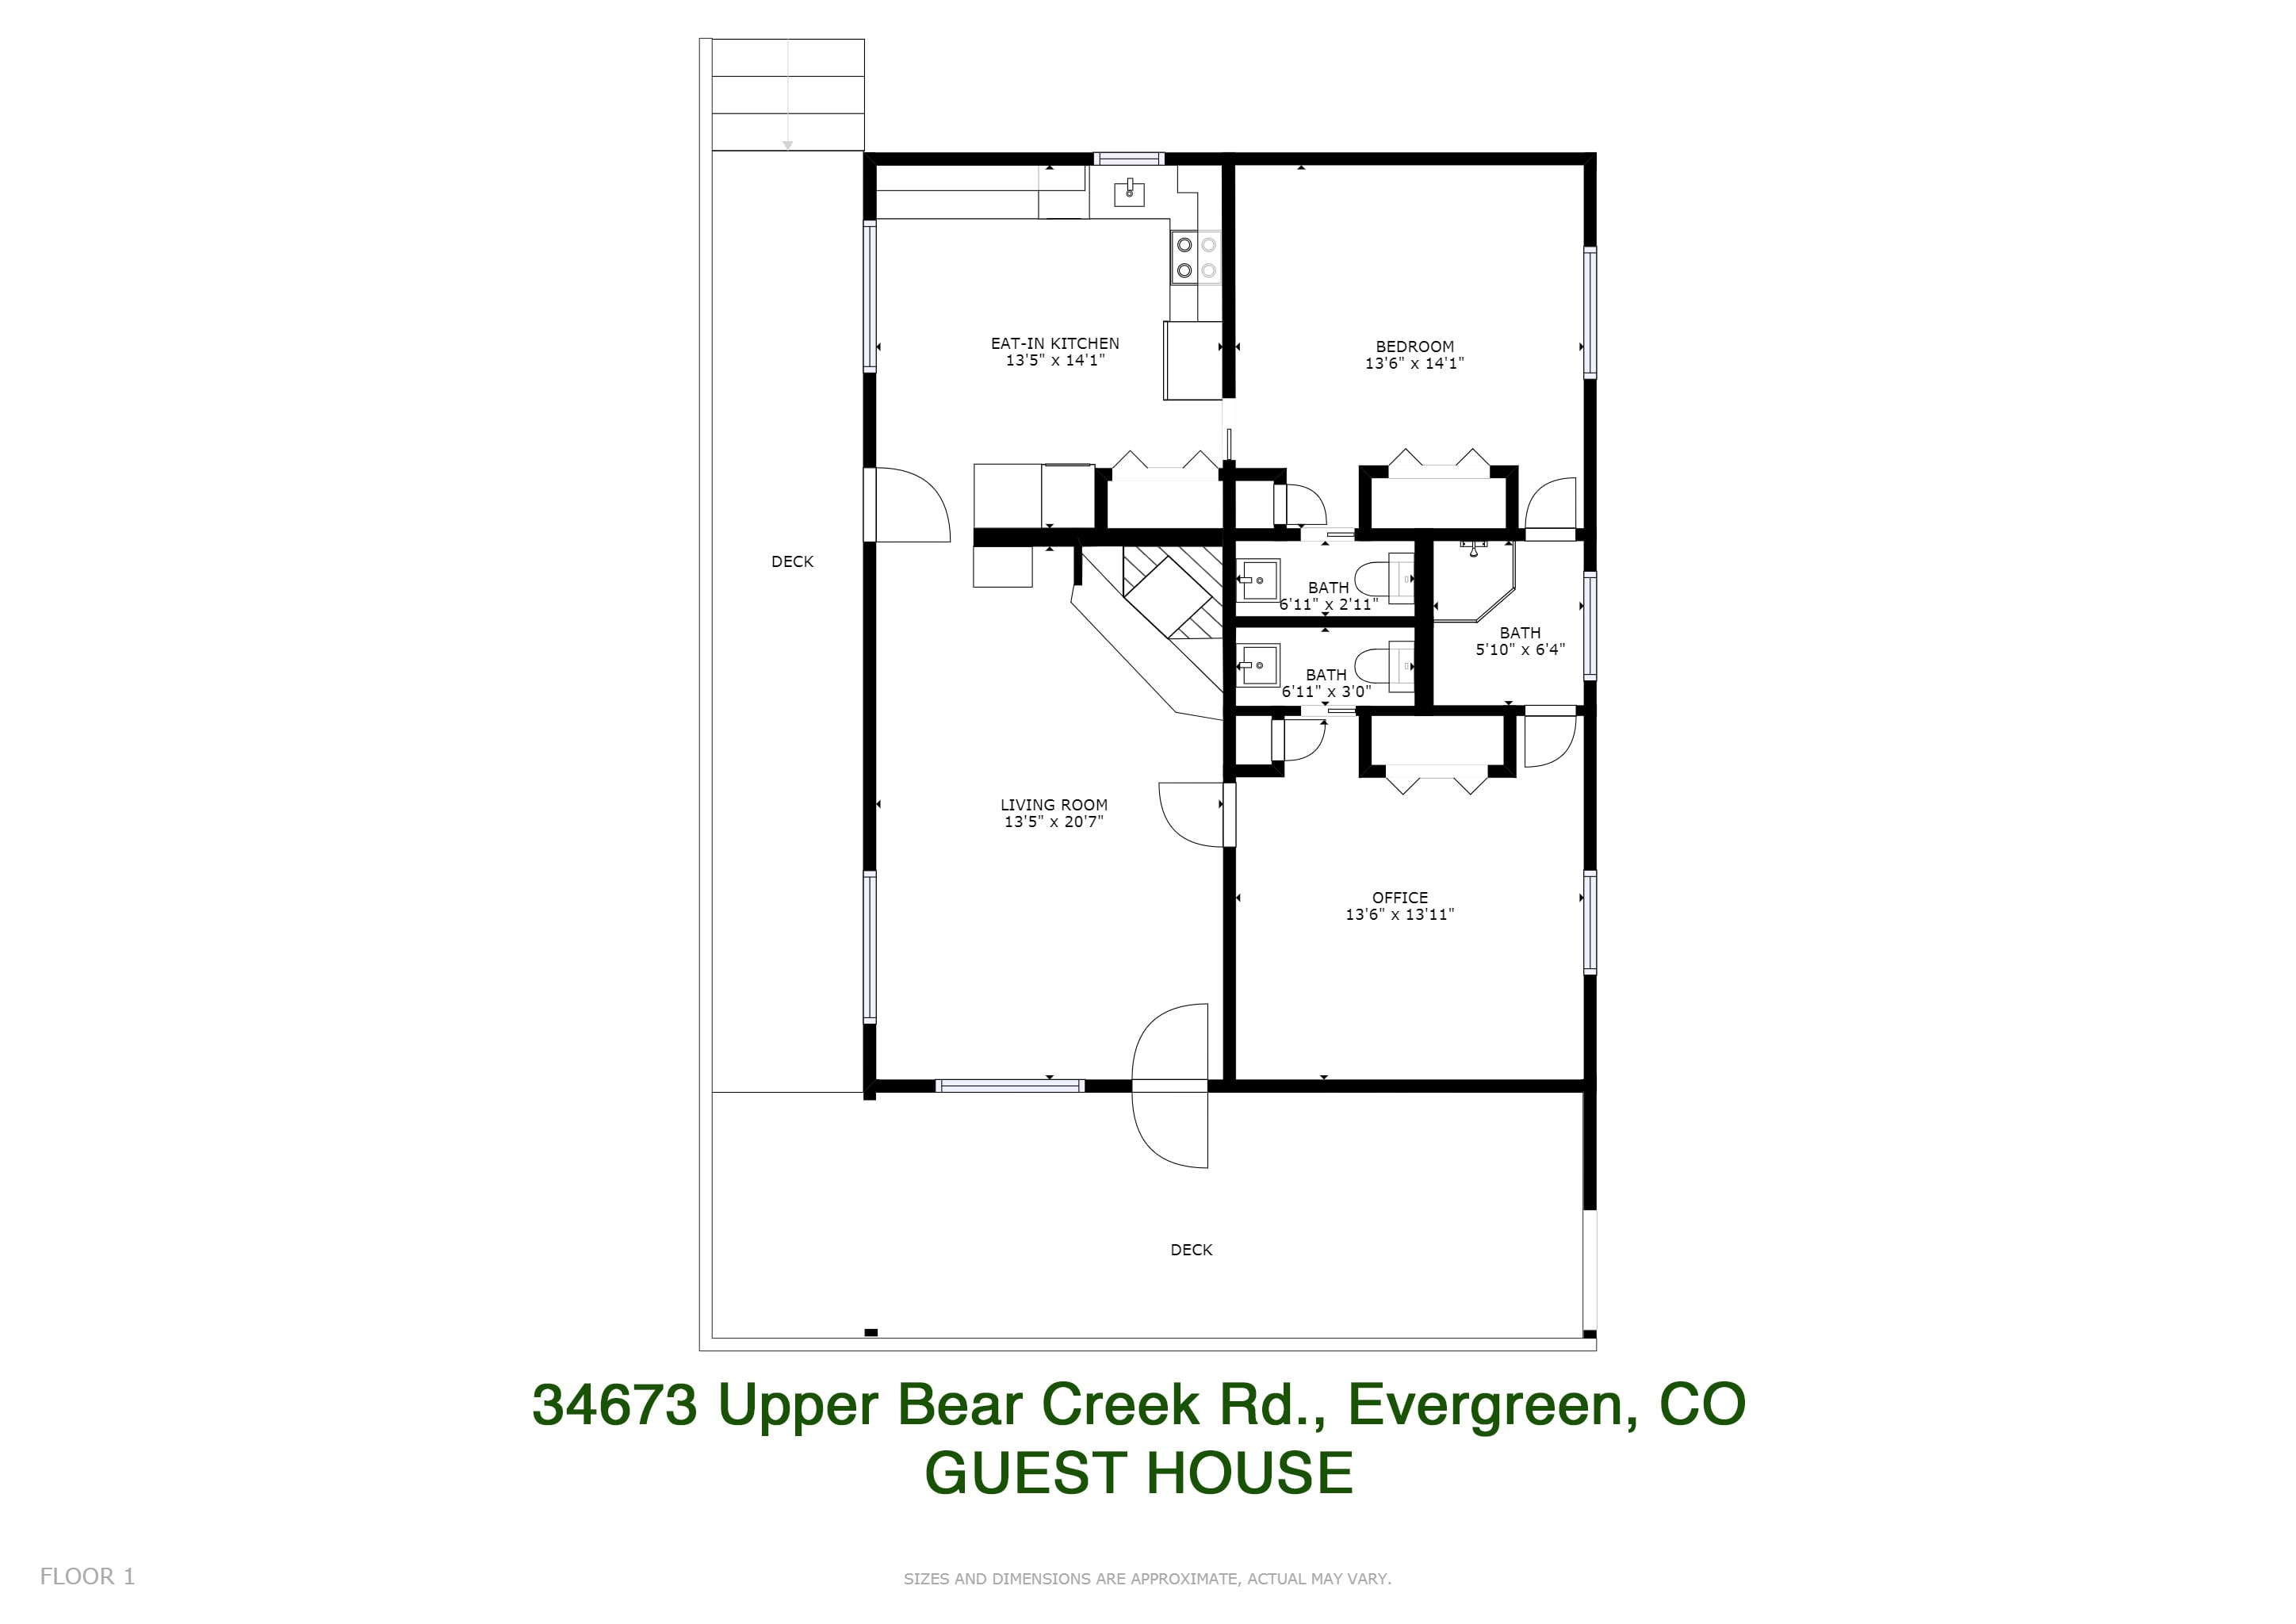 Upper Bear Creek Guest House floor plan